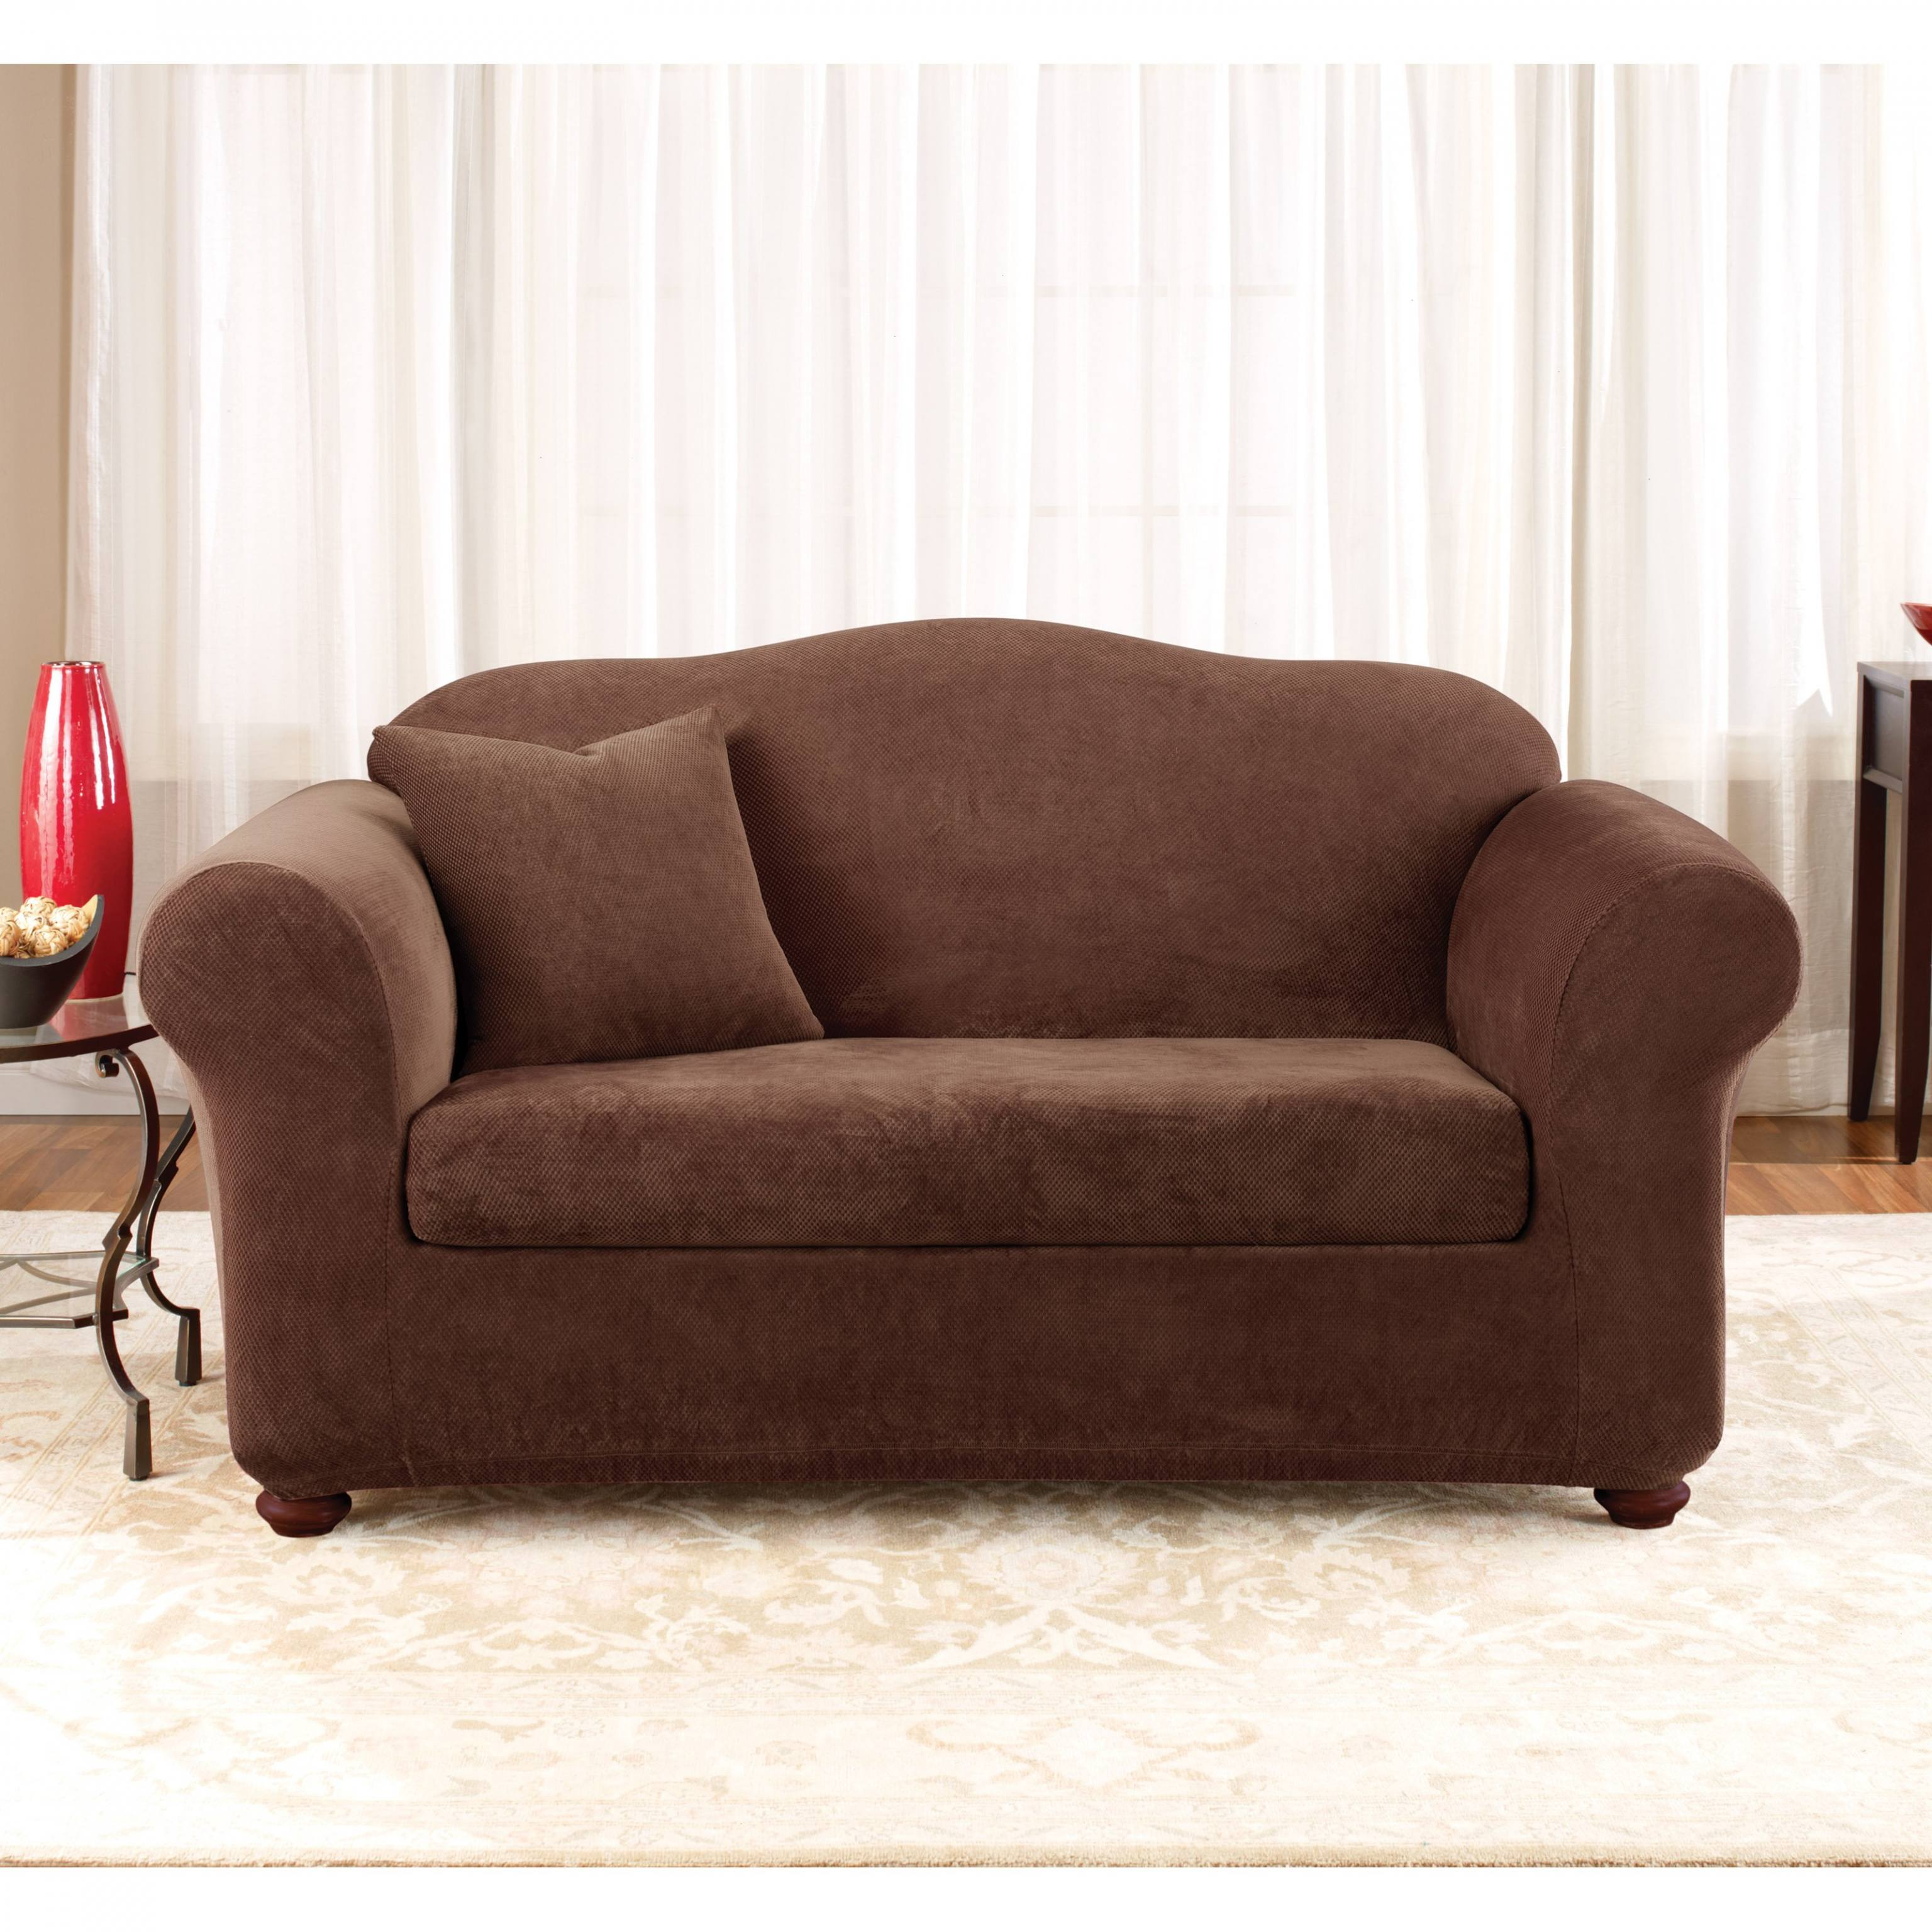 superb sofa covers bed bath and beyond photo-Fascinating sofa Covers Bed Bath and Beyond Photo